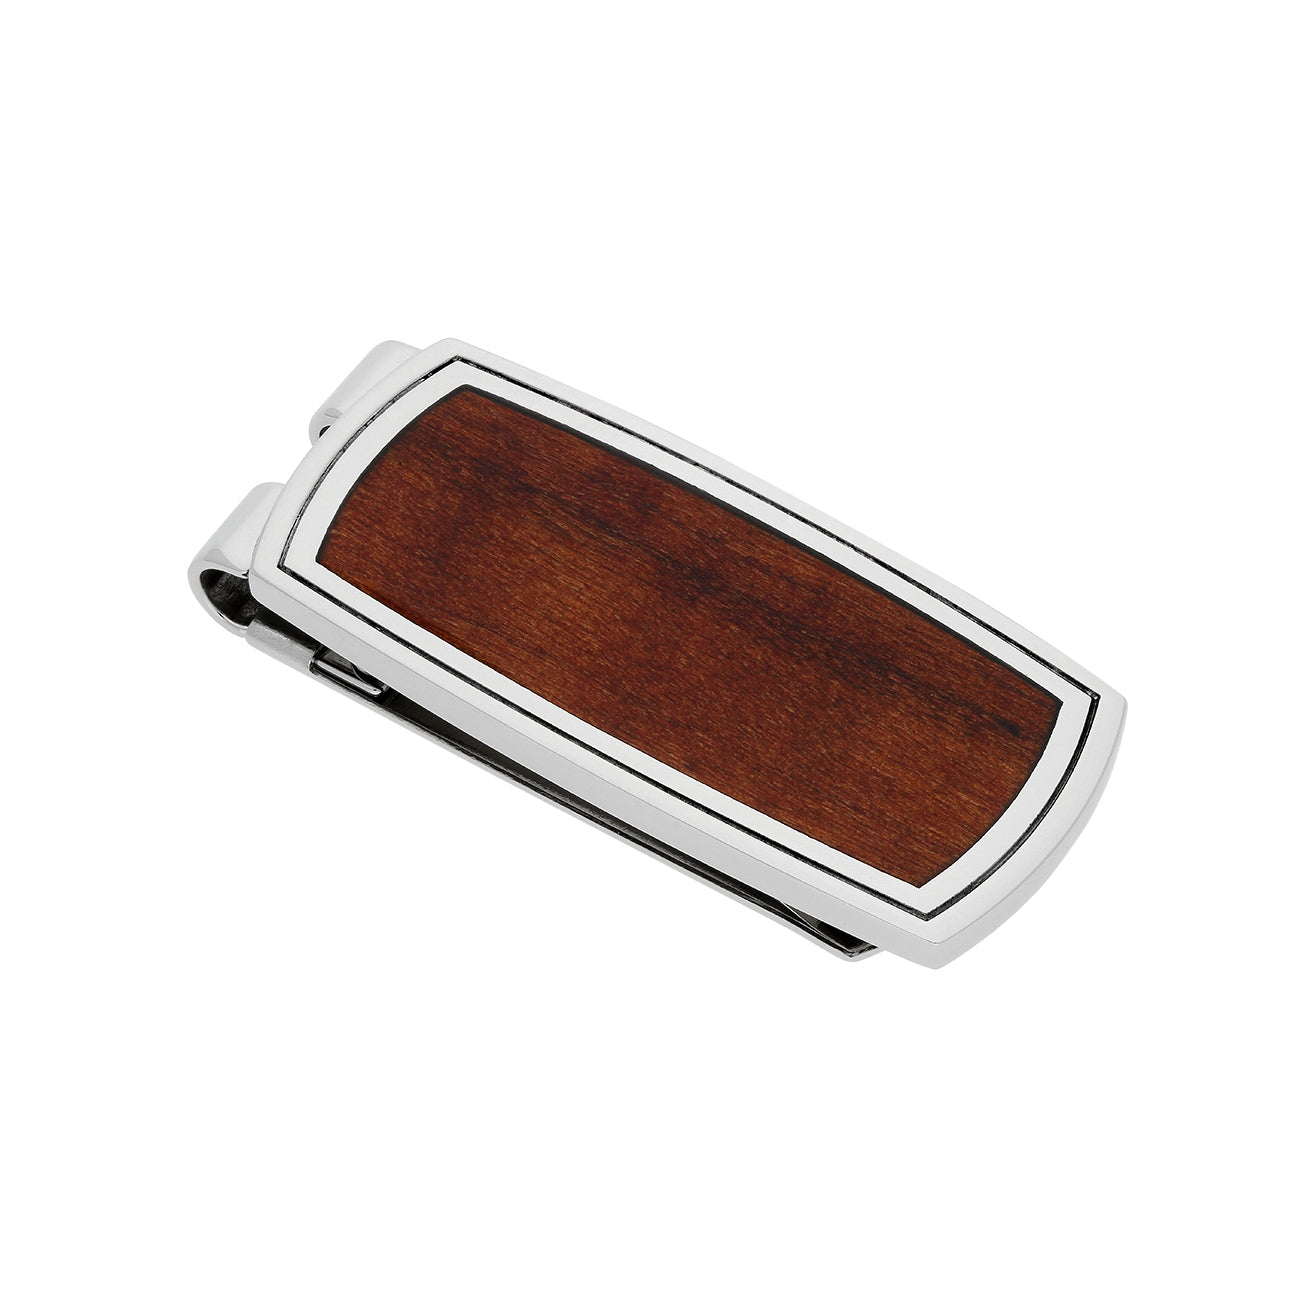 Willow Wood Inlay Money Clip, Stainless Steel